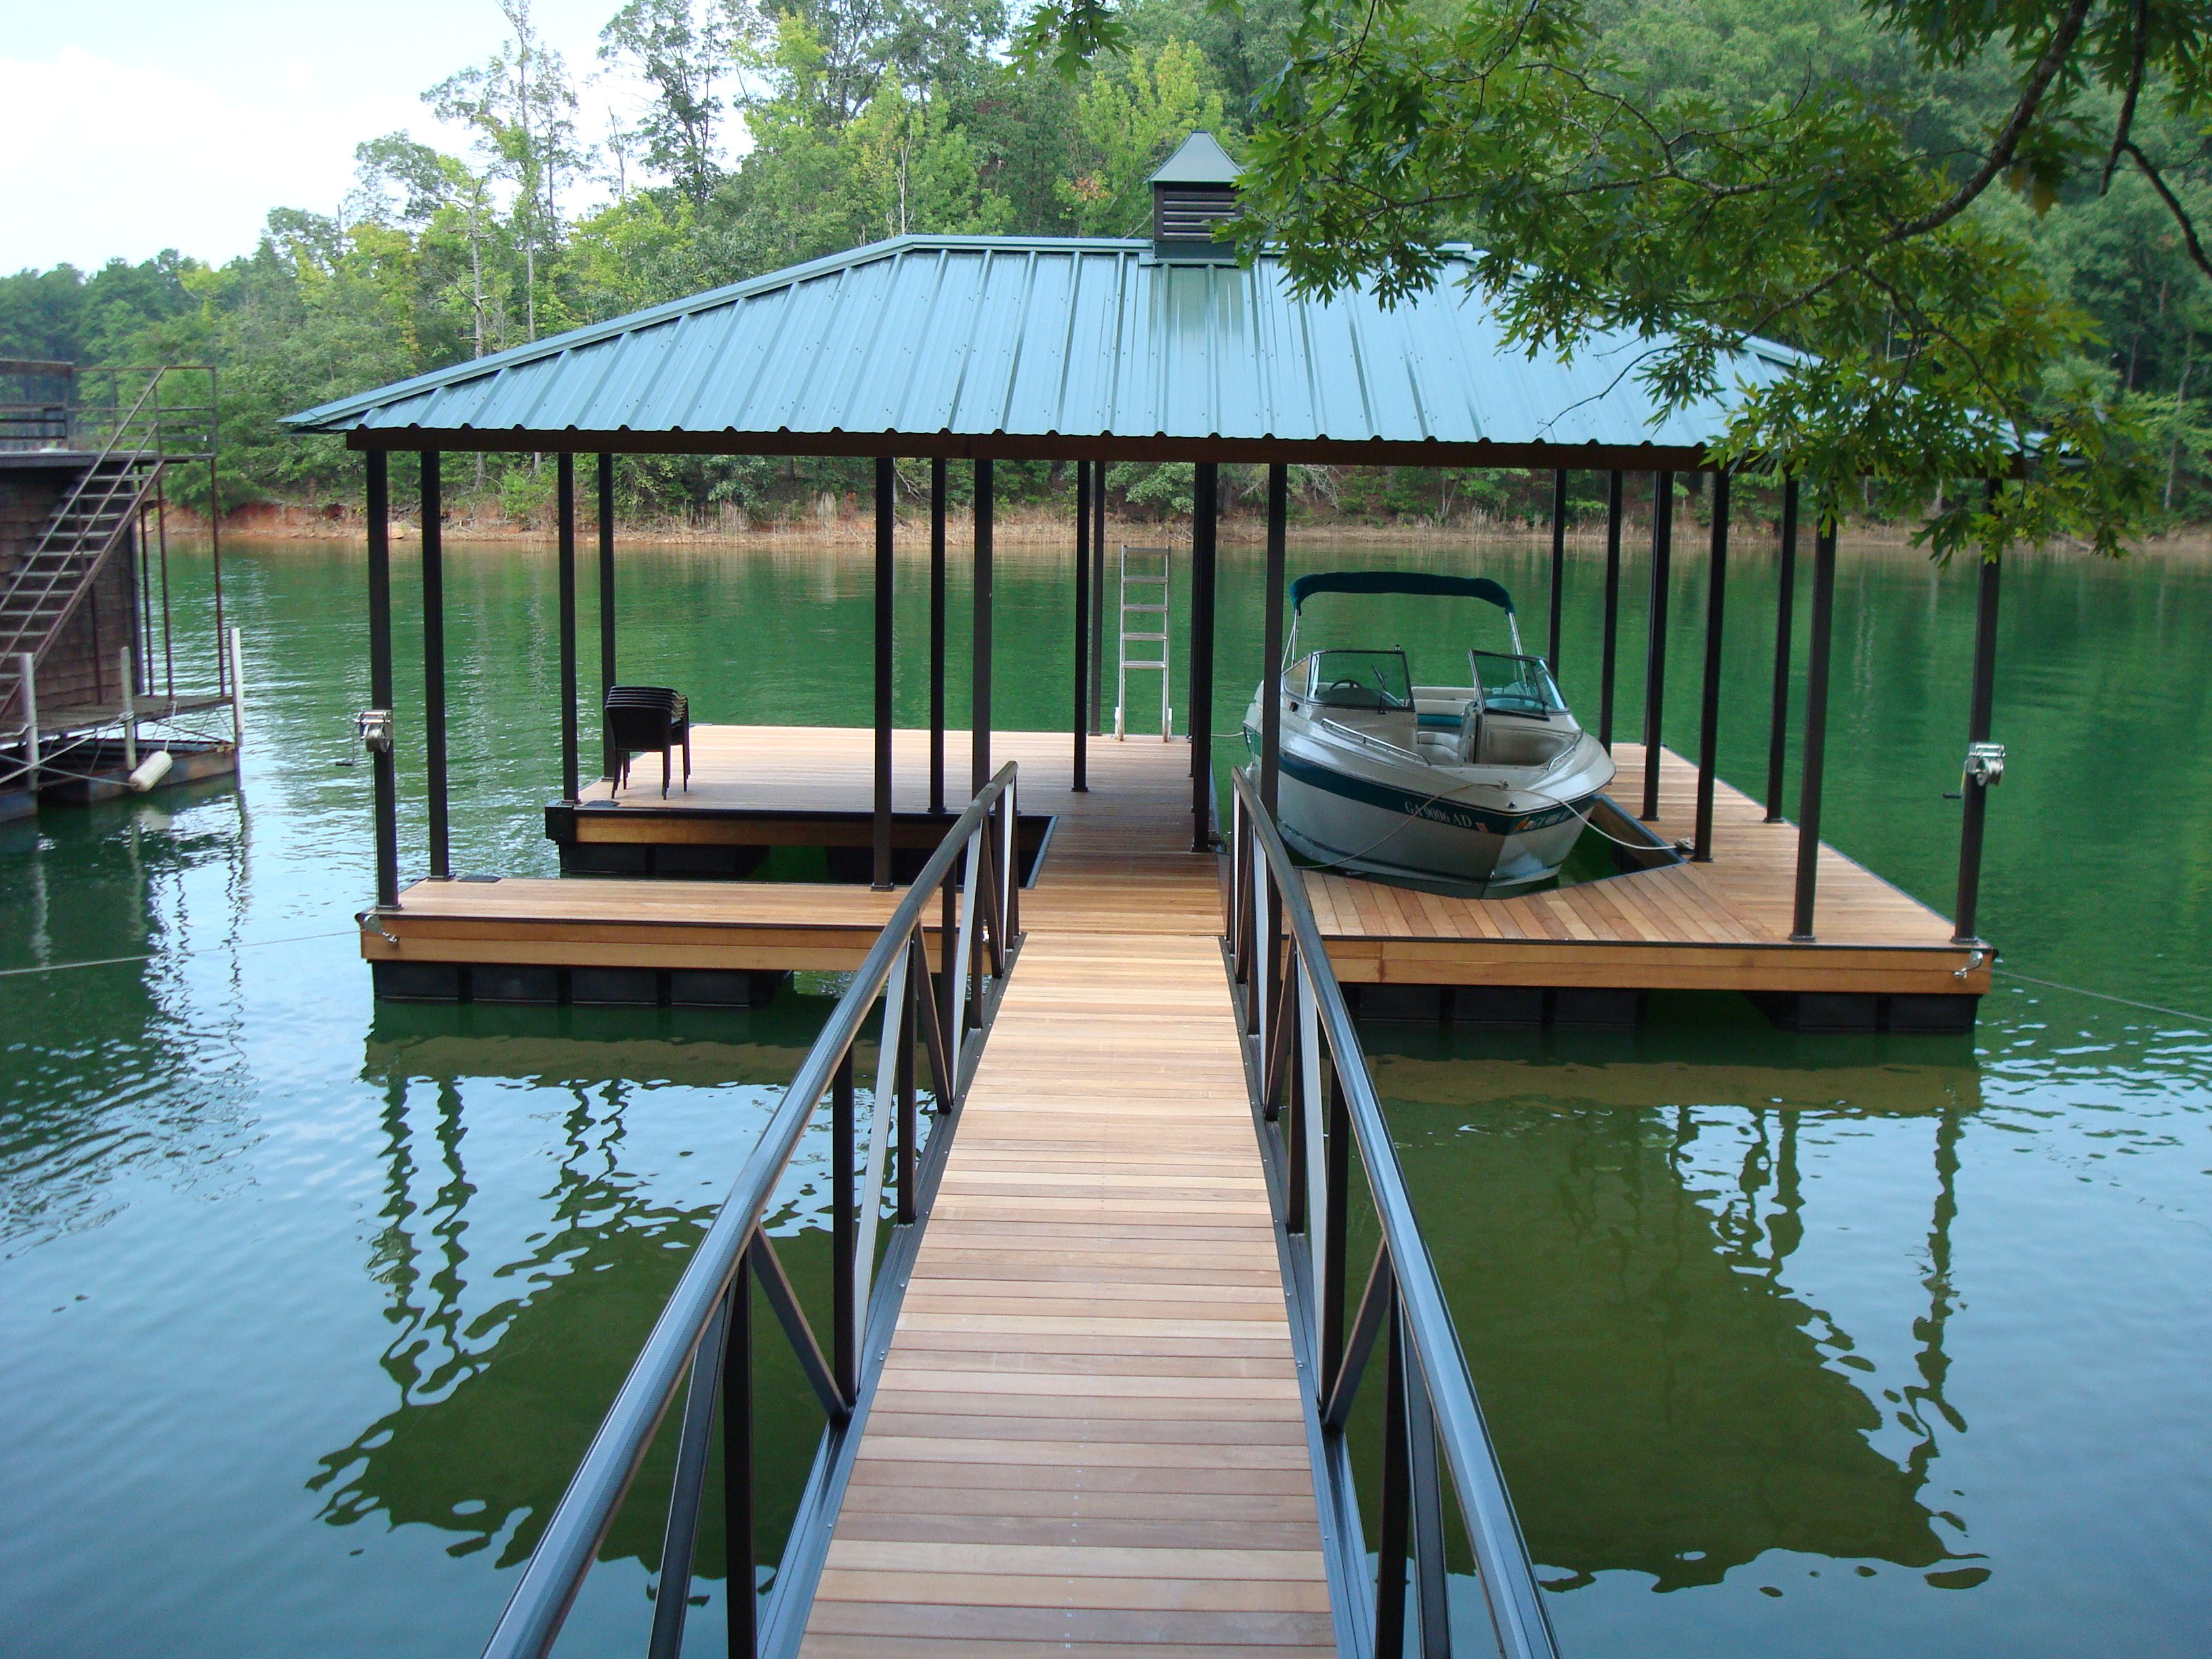 111 best boat dock images on Pinterest